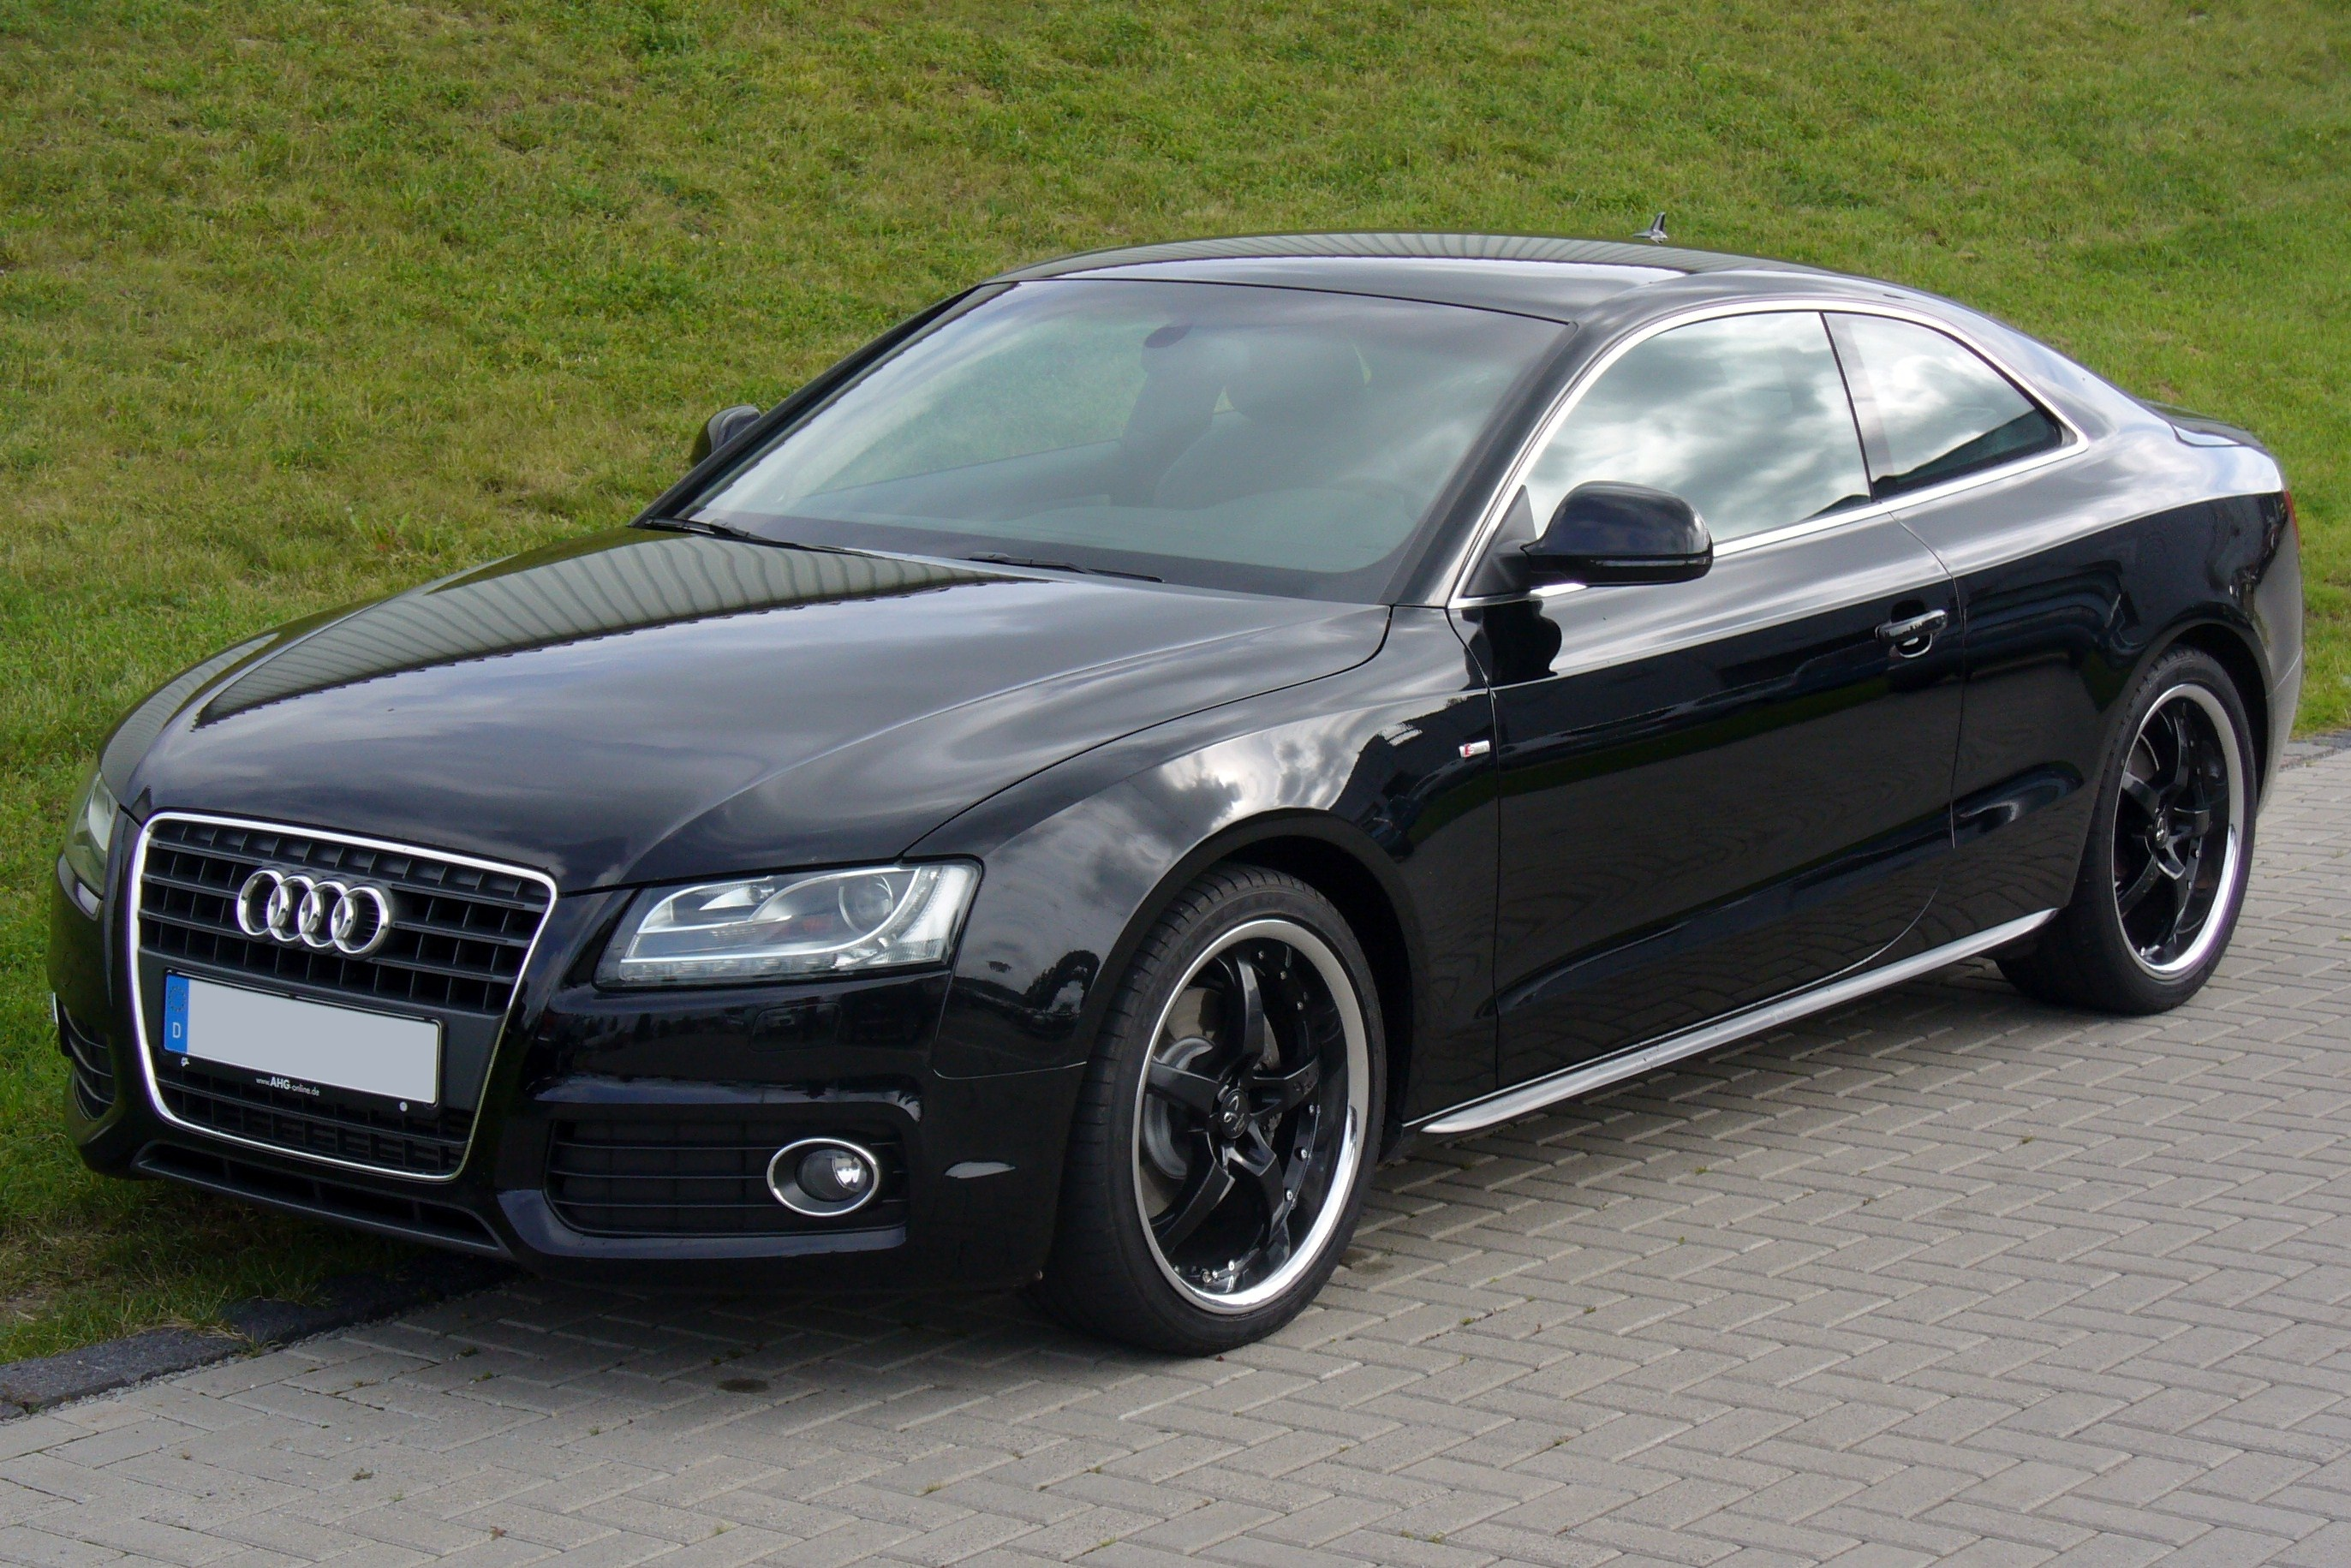 File audi a5 coup 2 7 tdi multitronic abt brilliantschwarz jpg wikimedia commons - Audi a5 coupe s line black edition for sale ...